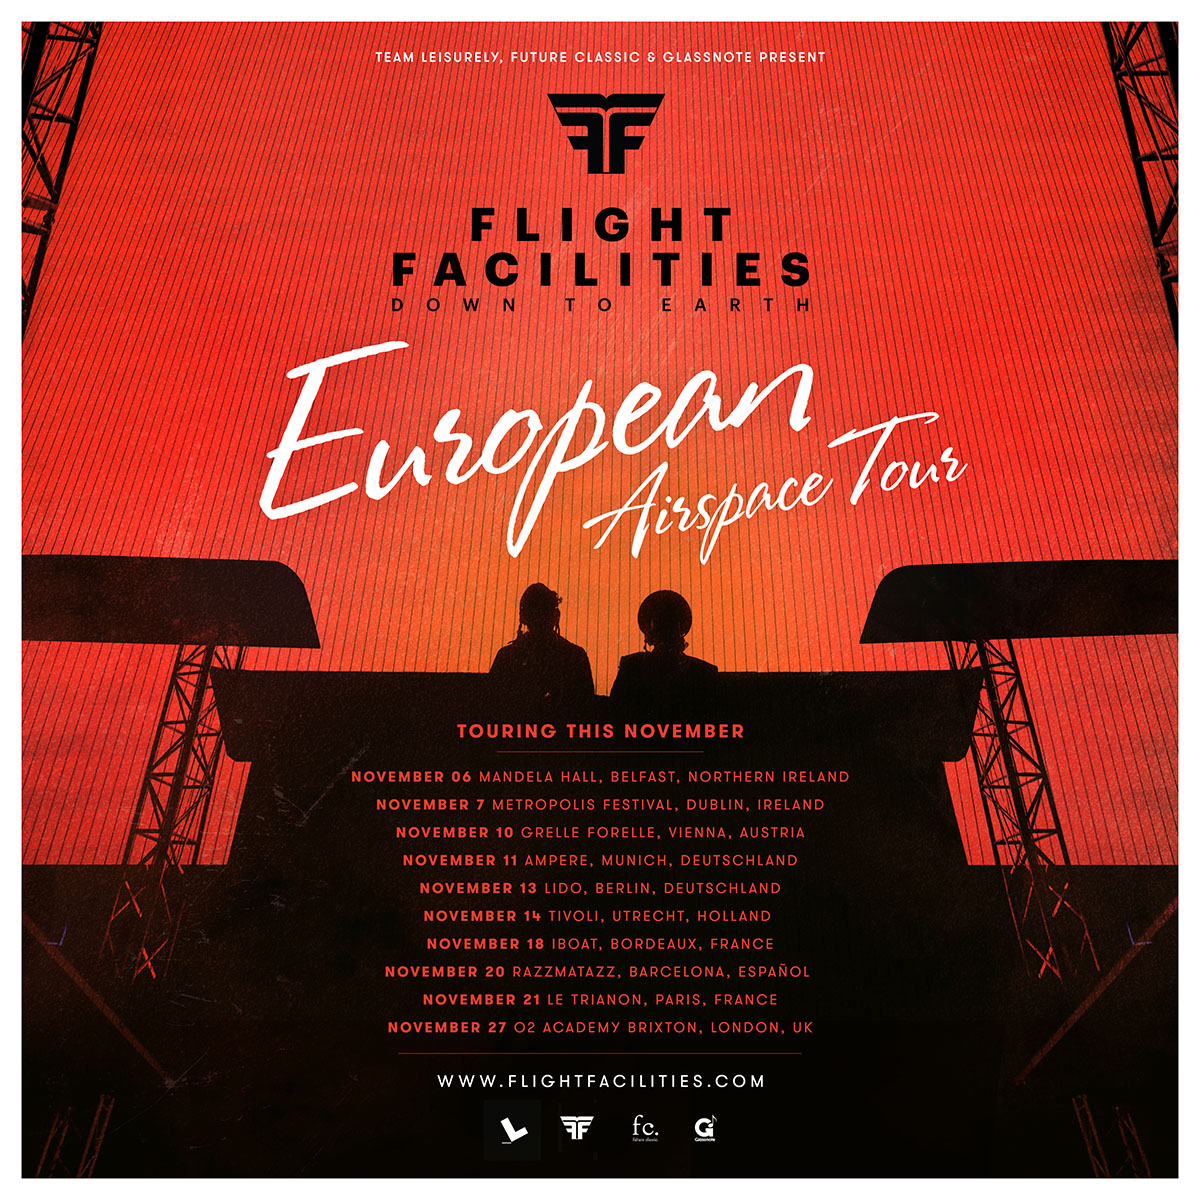 flight facilities european tour poster